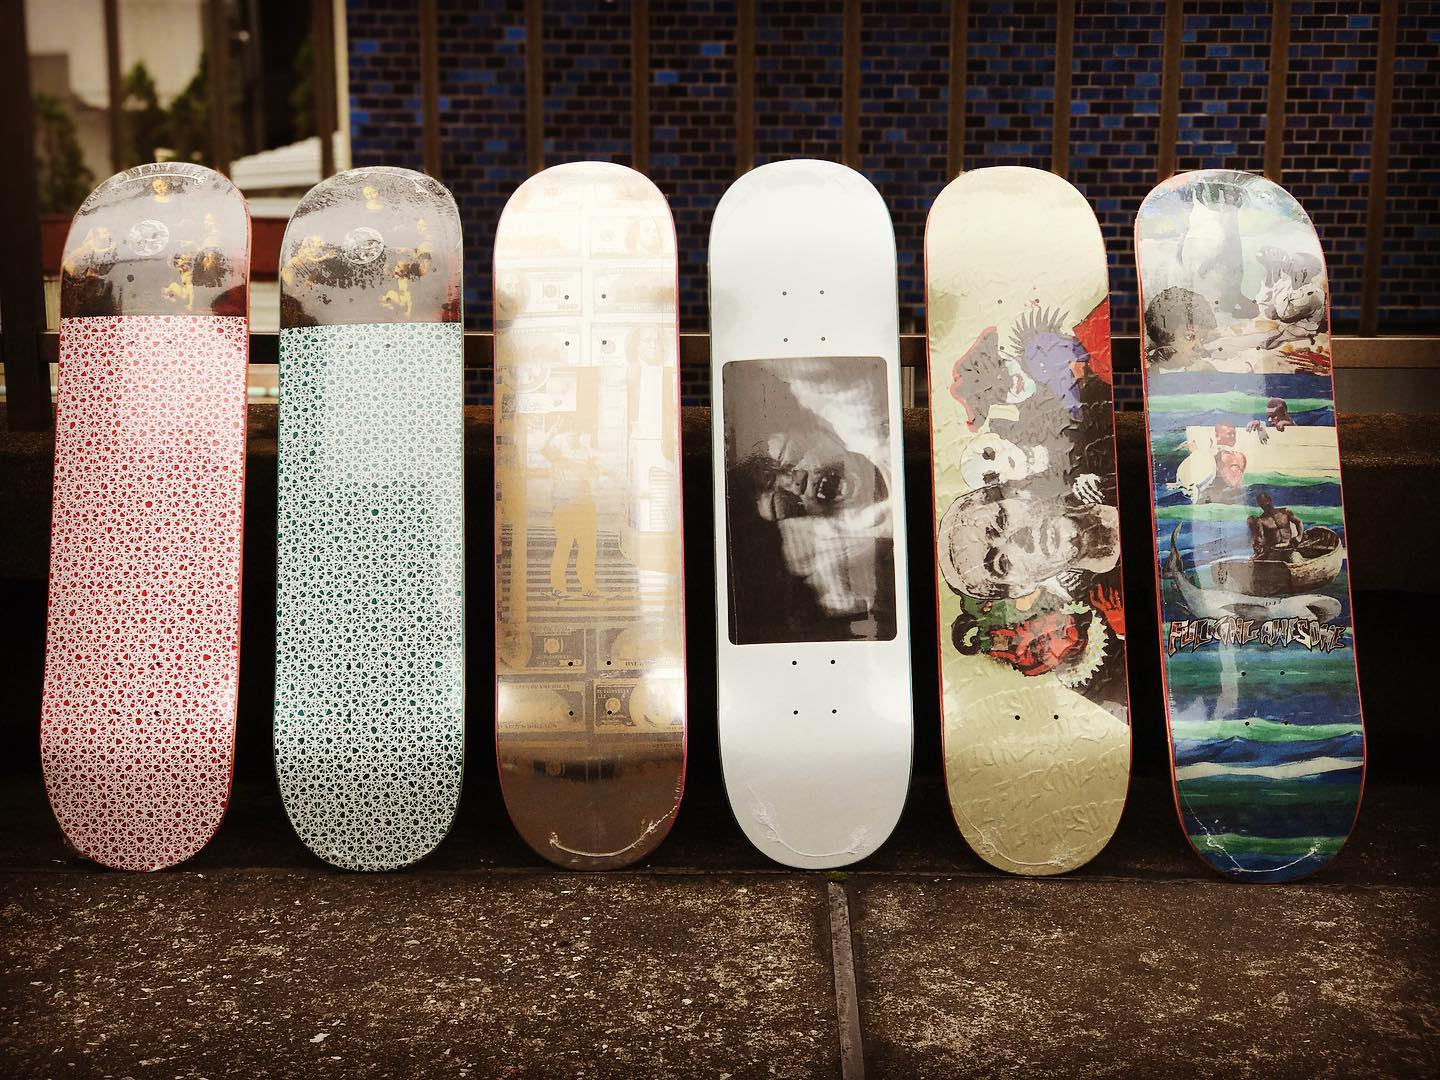 ・New @fuckingawesome decks.